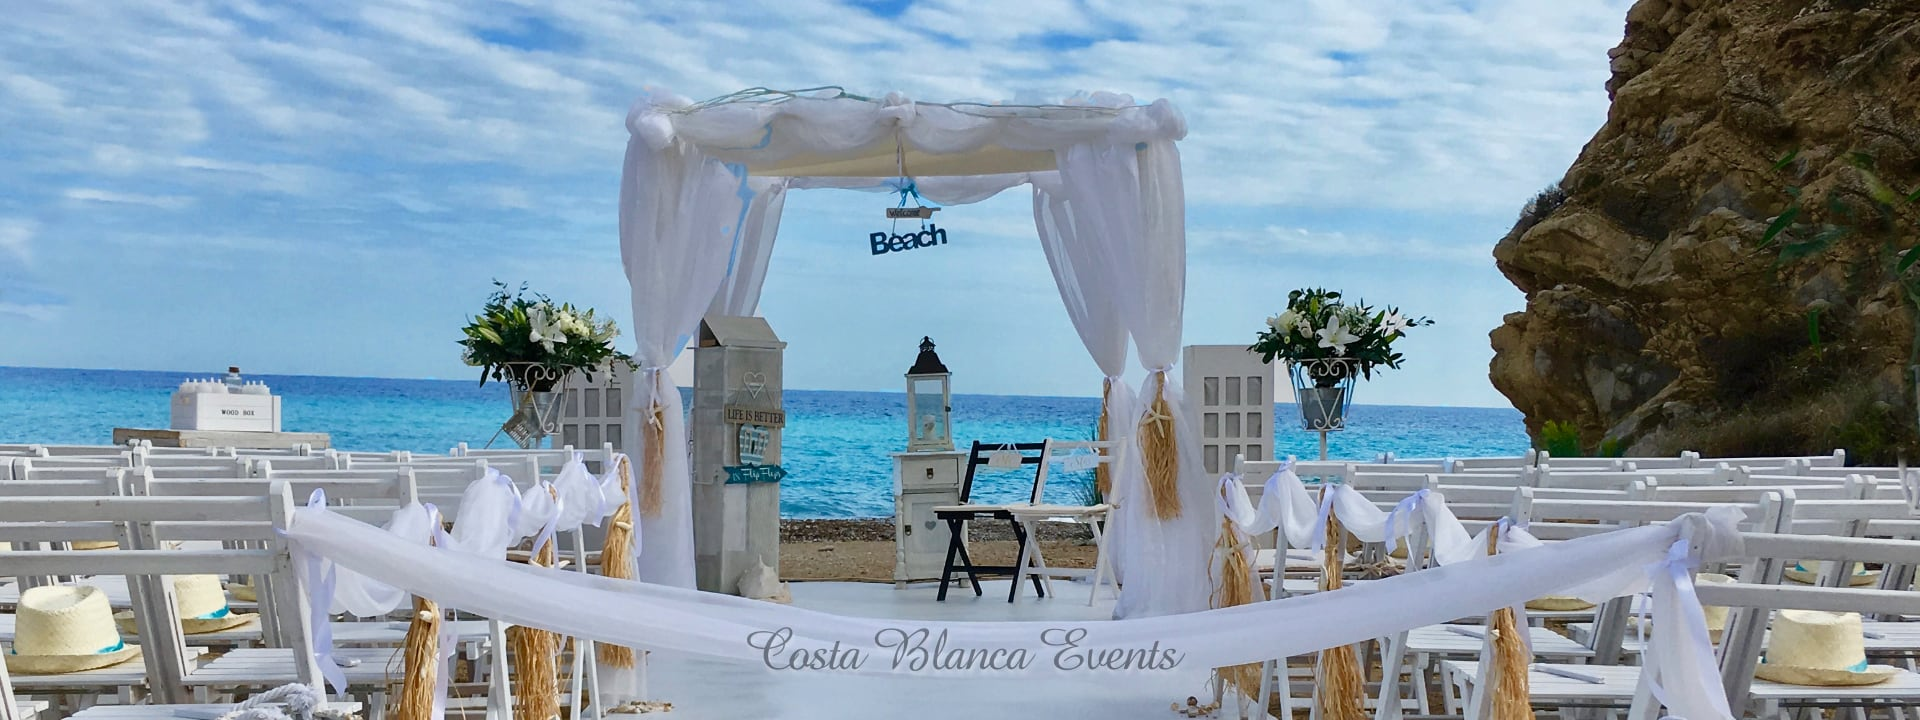 Photo of a ceremony setting with decorated gazebo and pew ends for a dream beach wedding in Spain